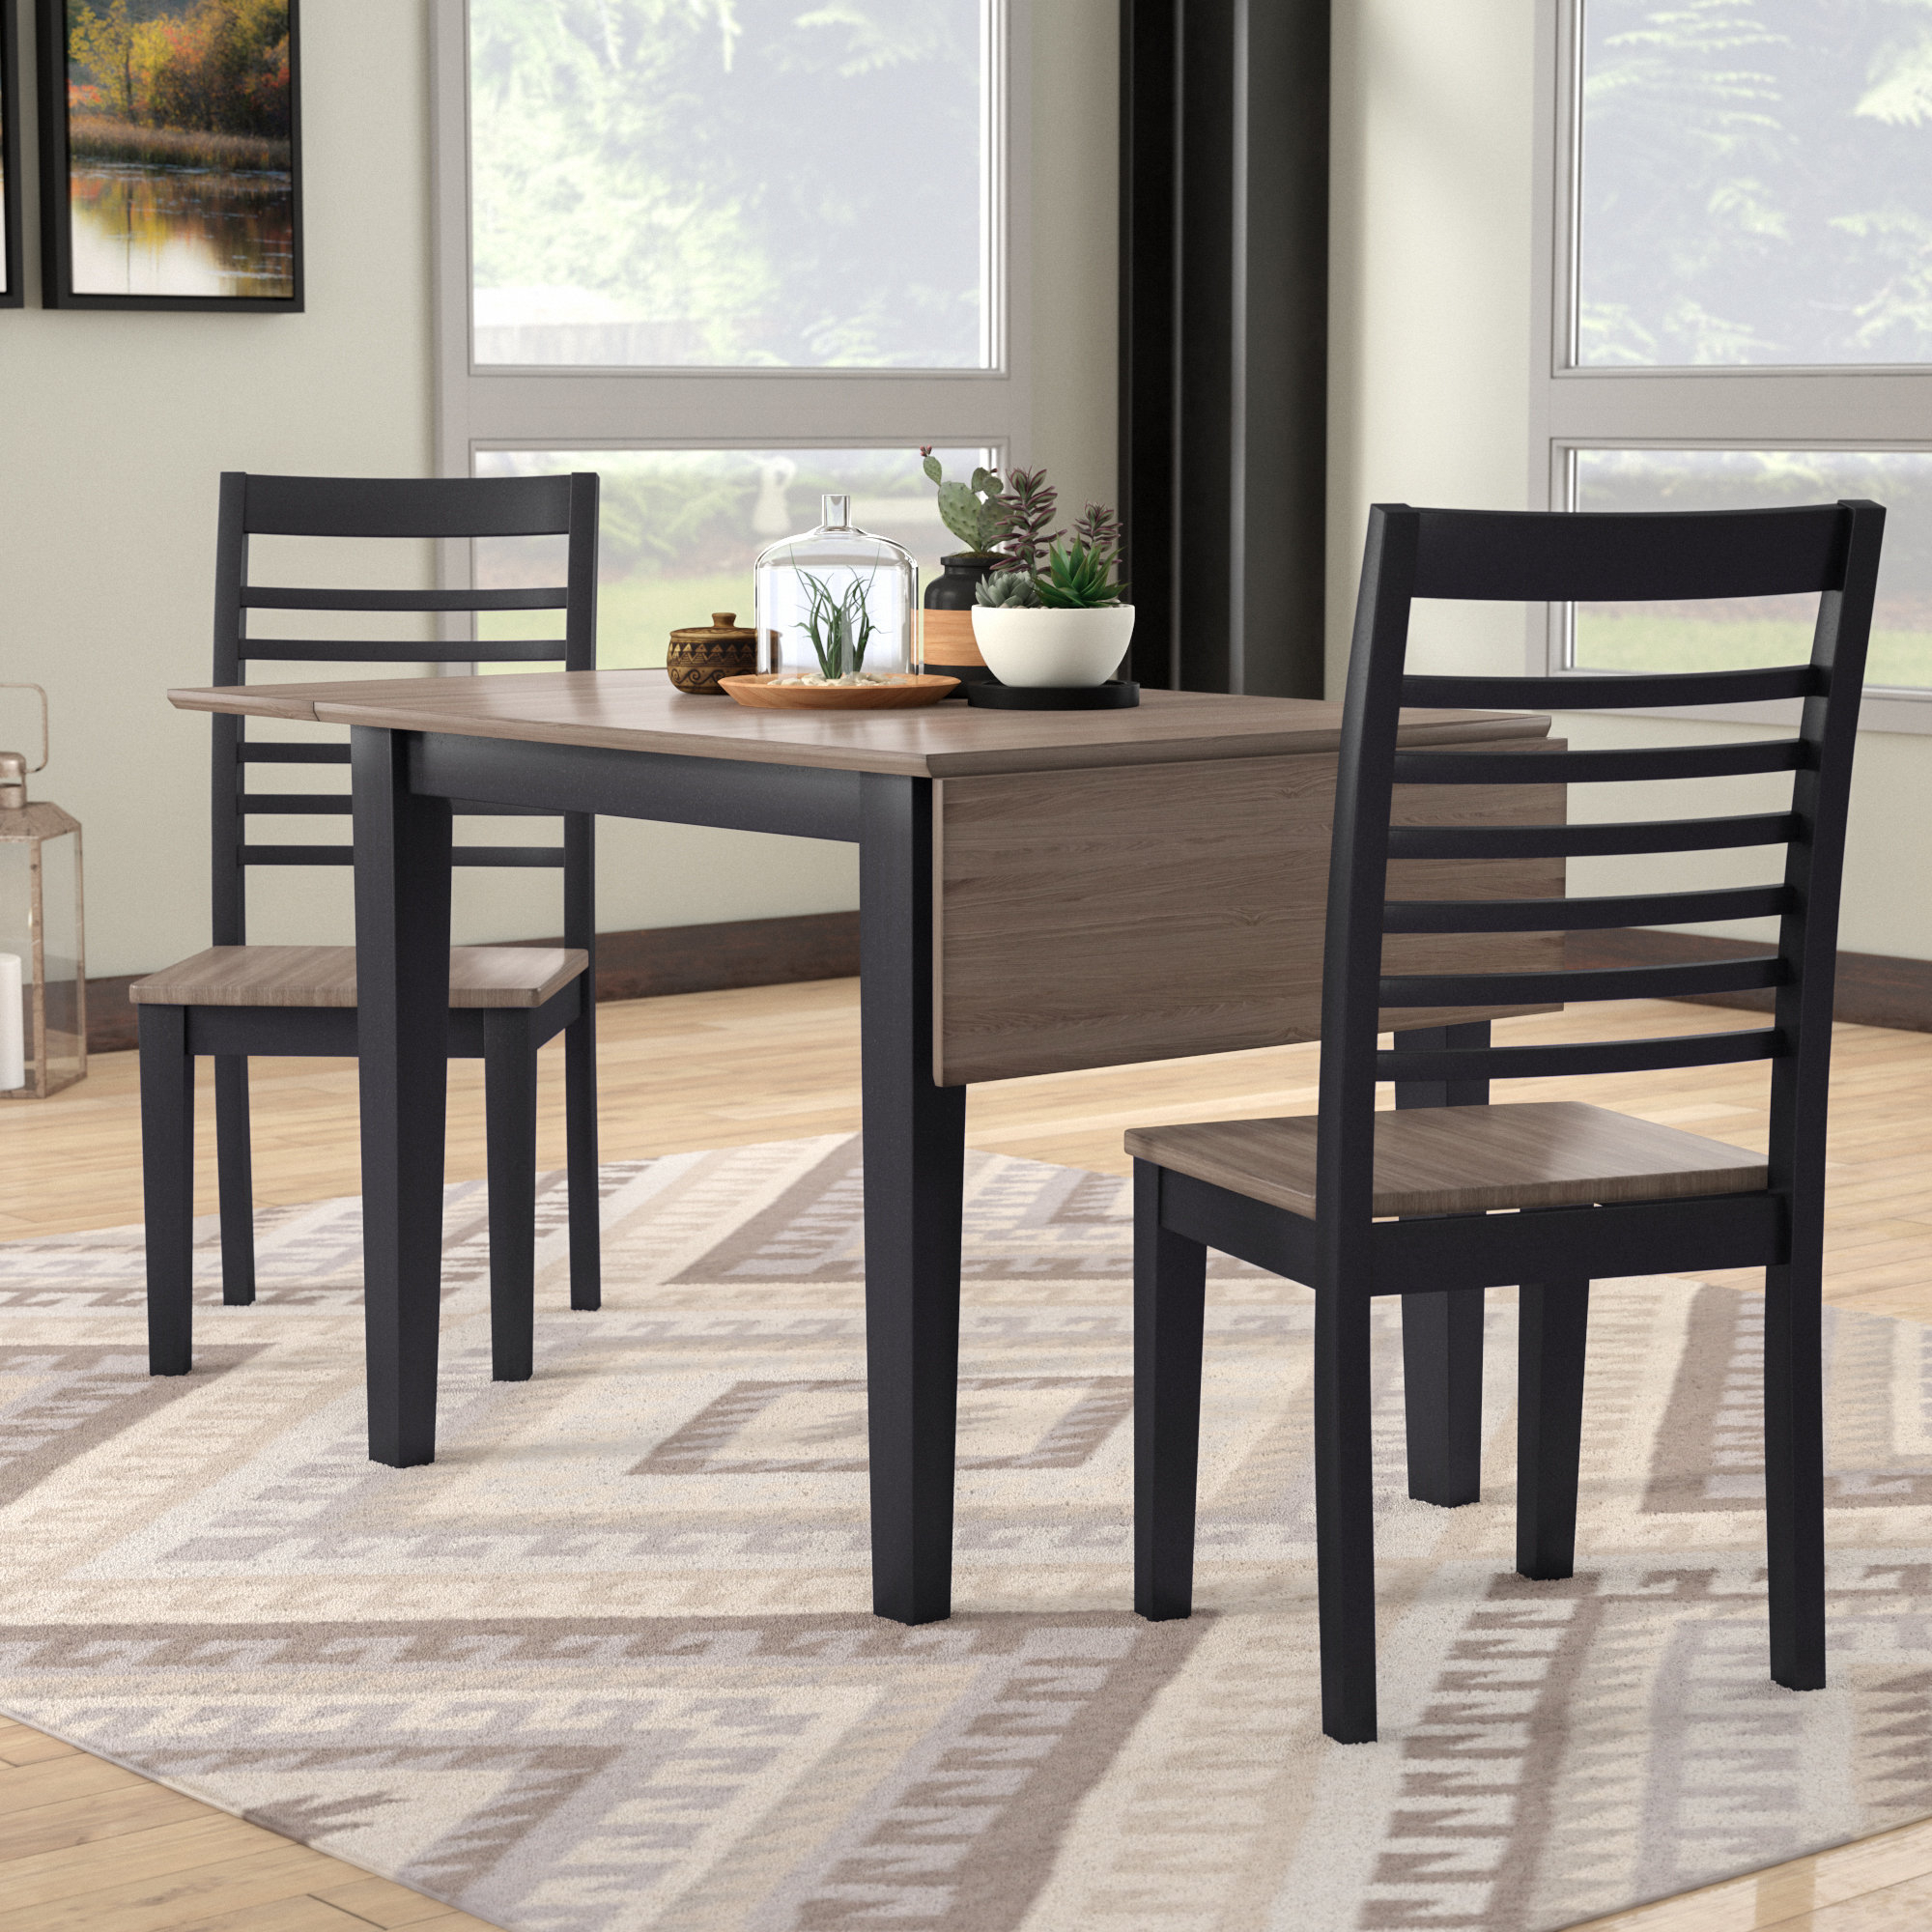 Union Rustic Shepherd 3 Piece Dining Set Pertaining To Recent Kernville 3 Piece Counter Height Dining Sets (Photo 7 of 20)